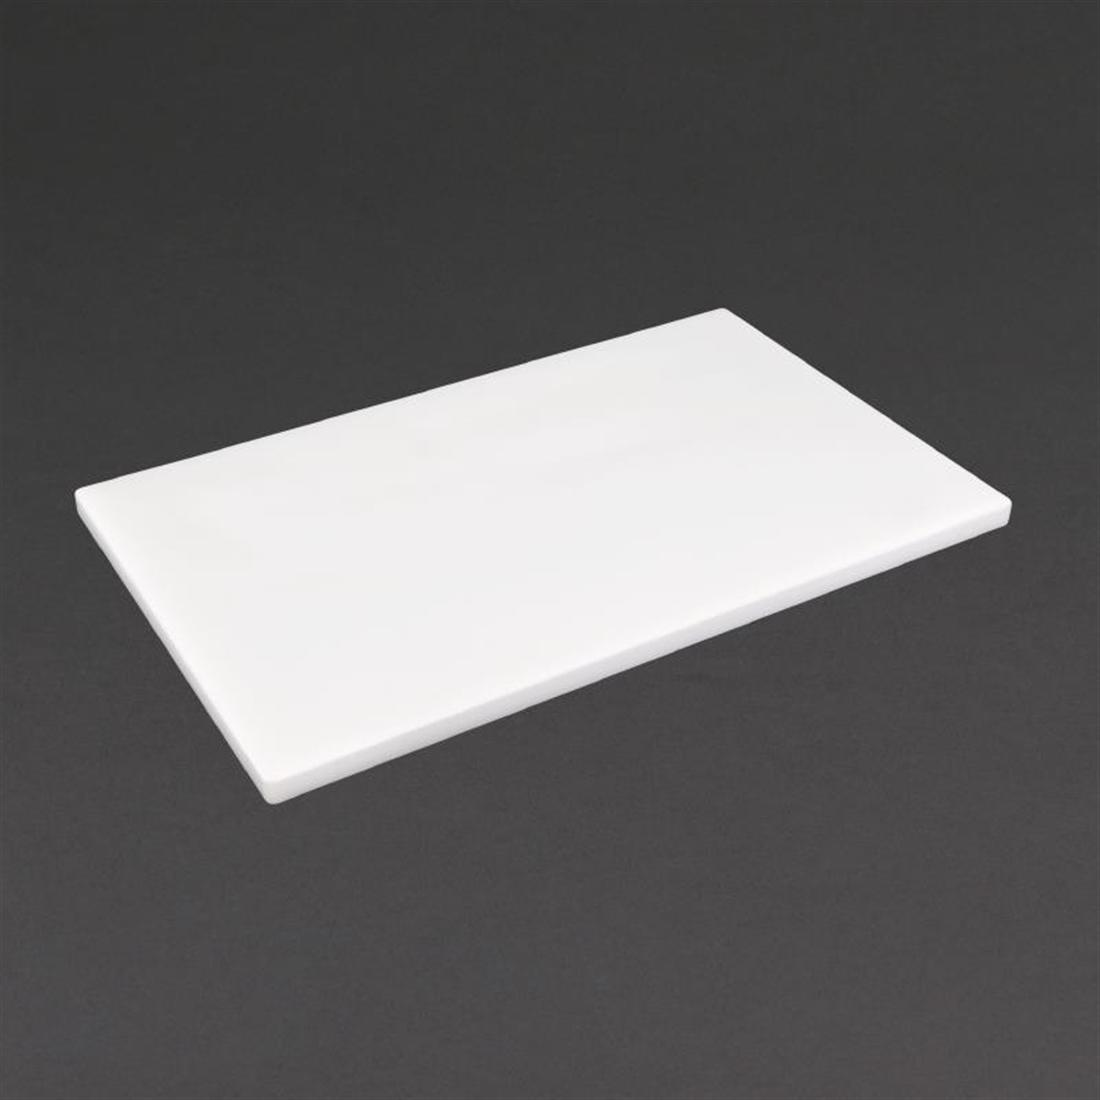 GL282 - Hygiplas Gastronorm 1/1 White Chopping Board- Each - GL282